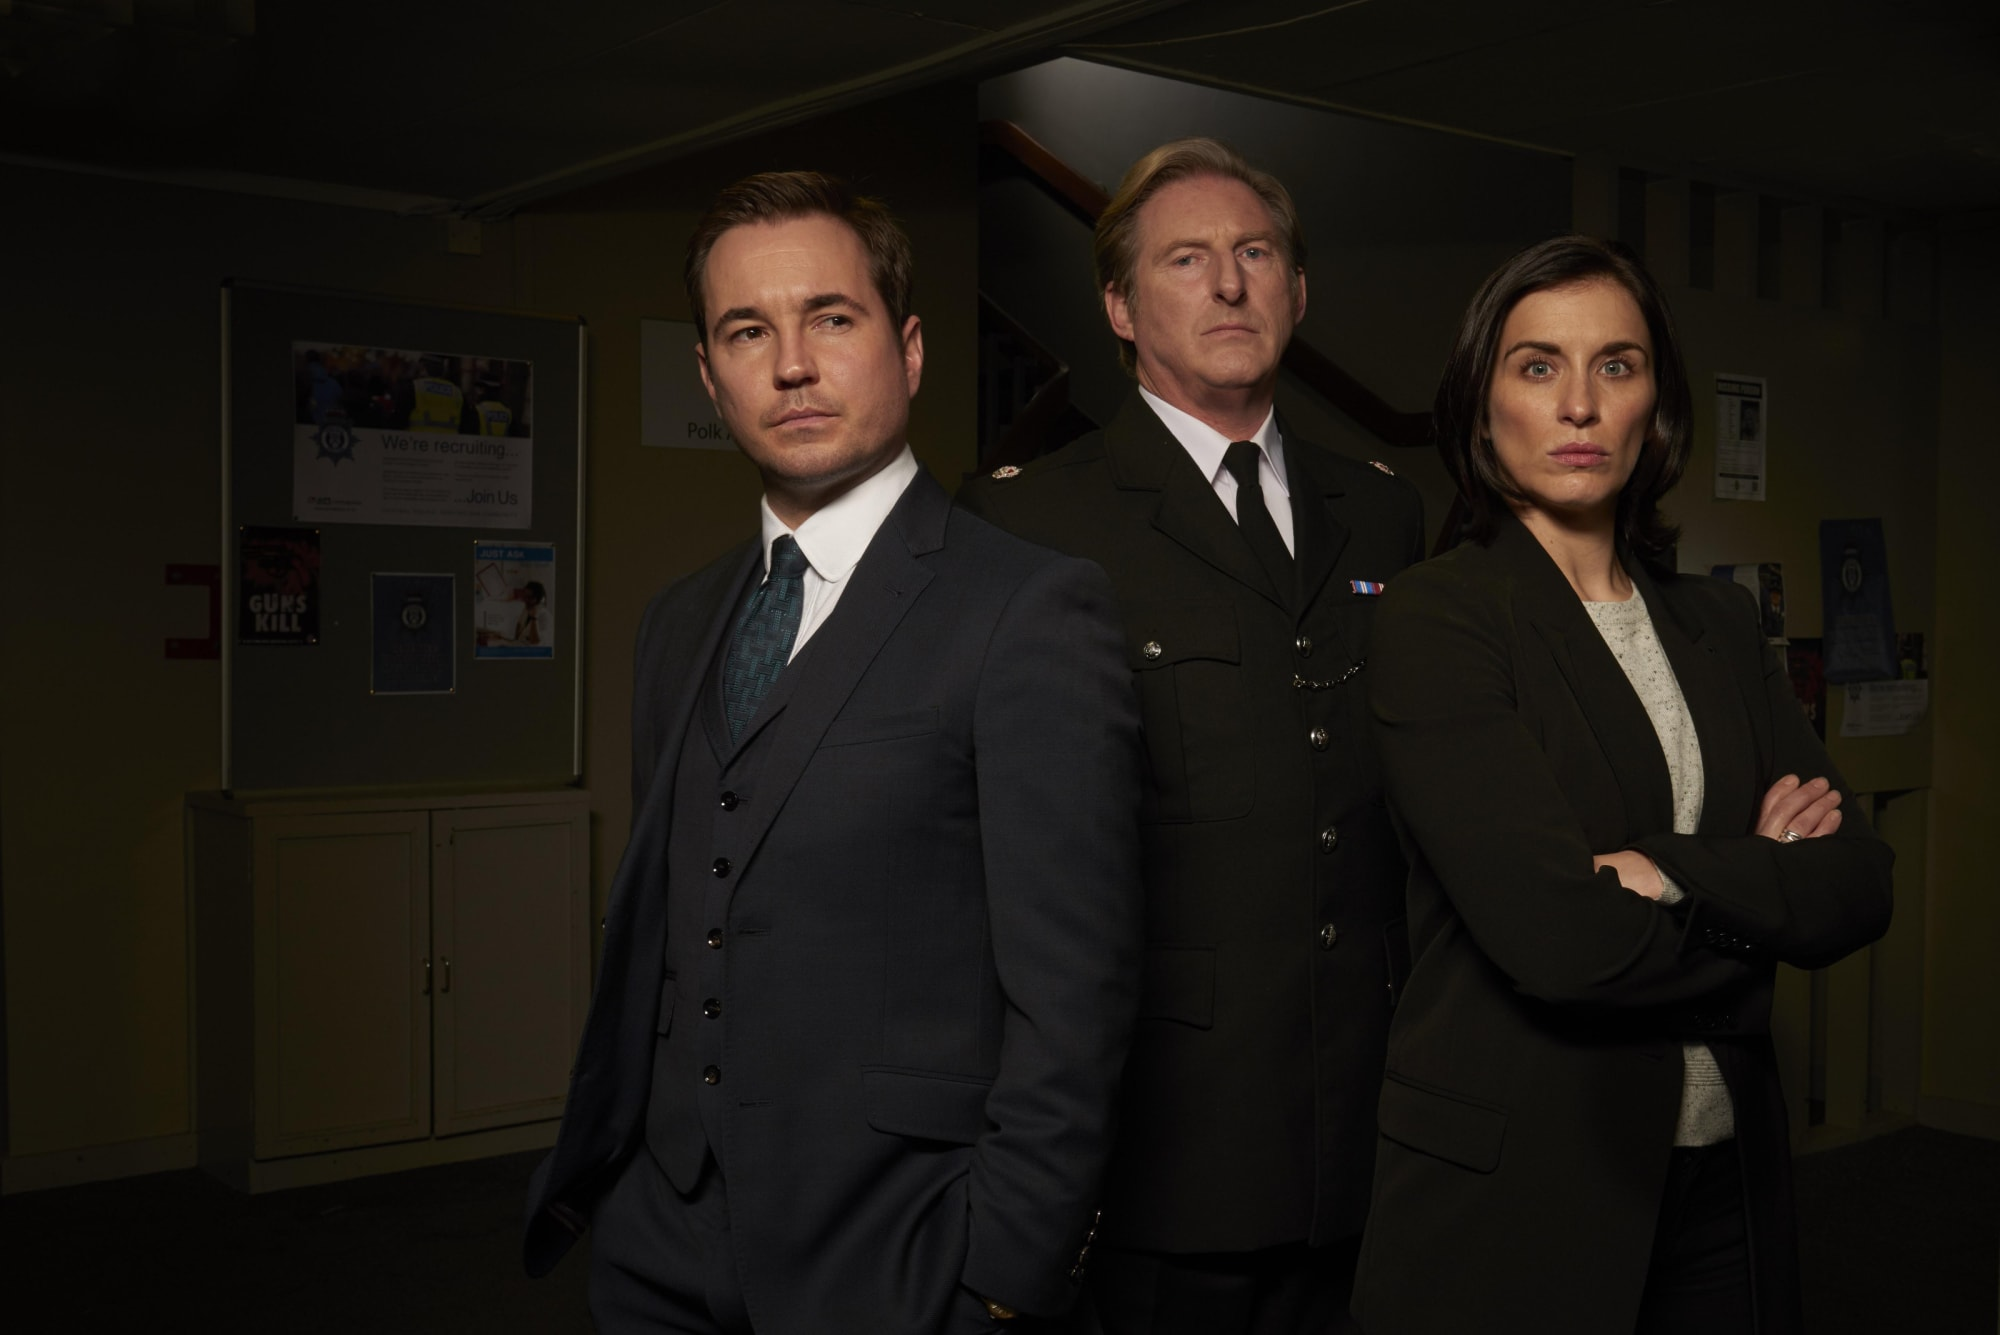 Line of Duty series 1, episode 3: Where all the bodies are buried